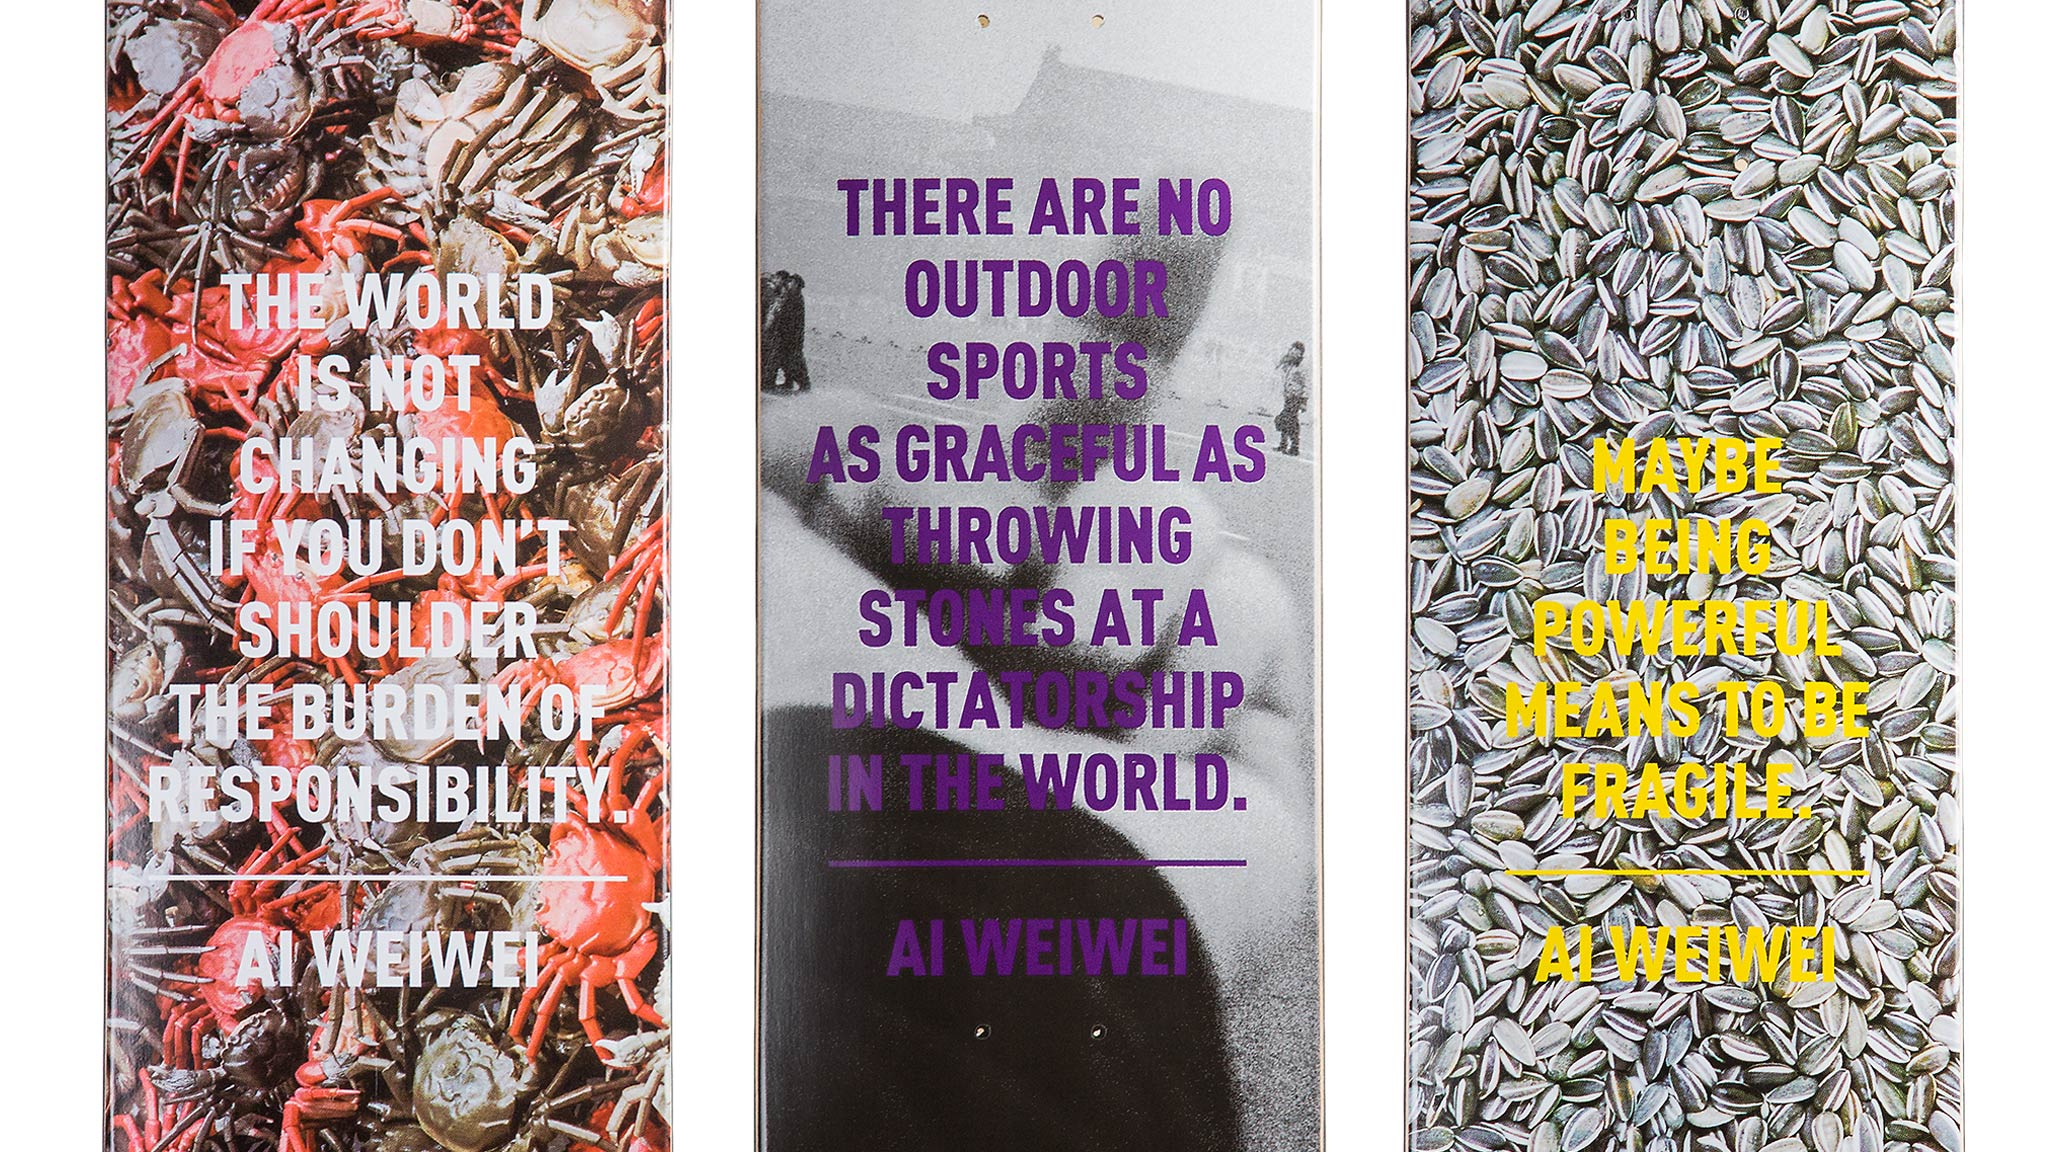 The SK8room x Ai Weiwei